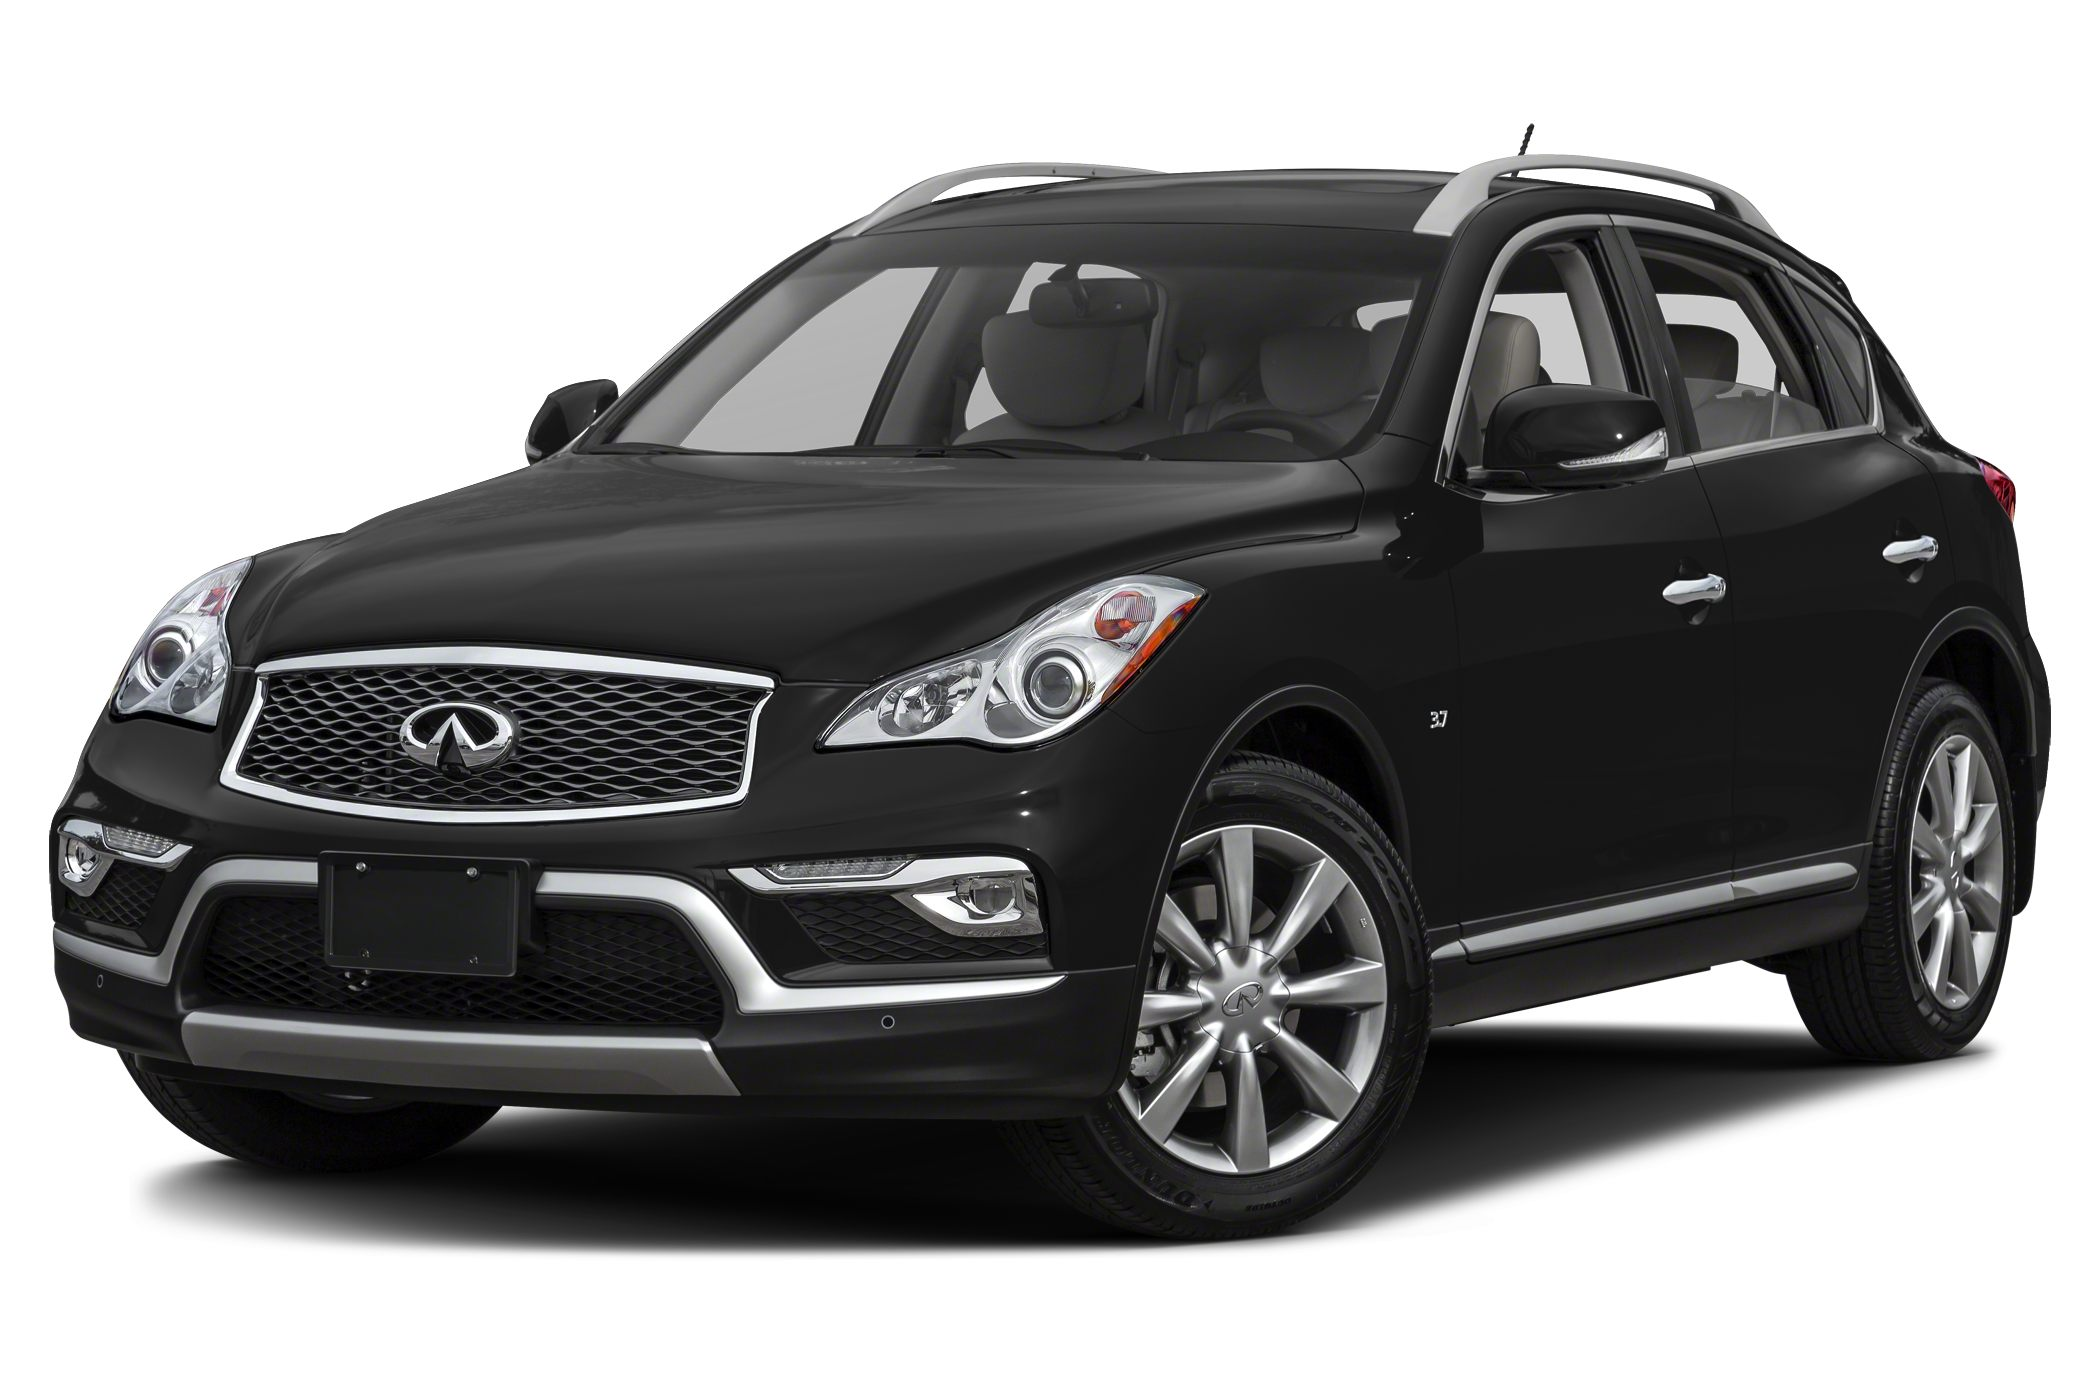 en wire january home reports business news u infiniti s sales for